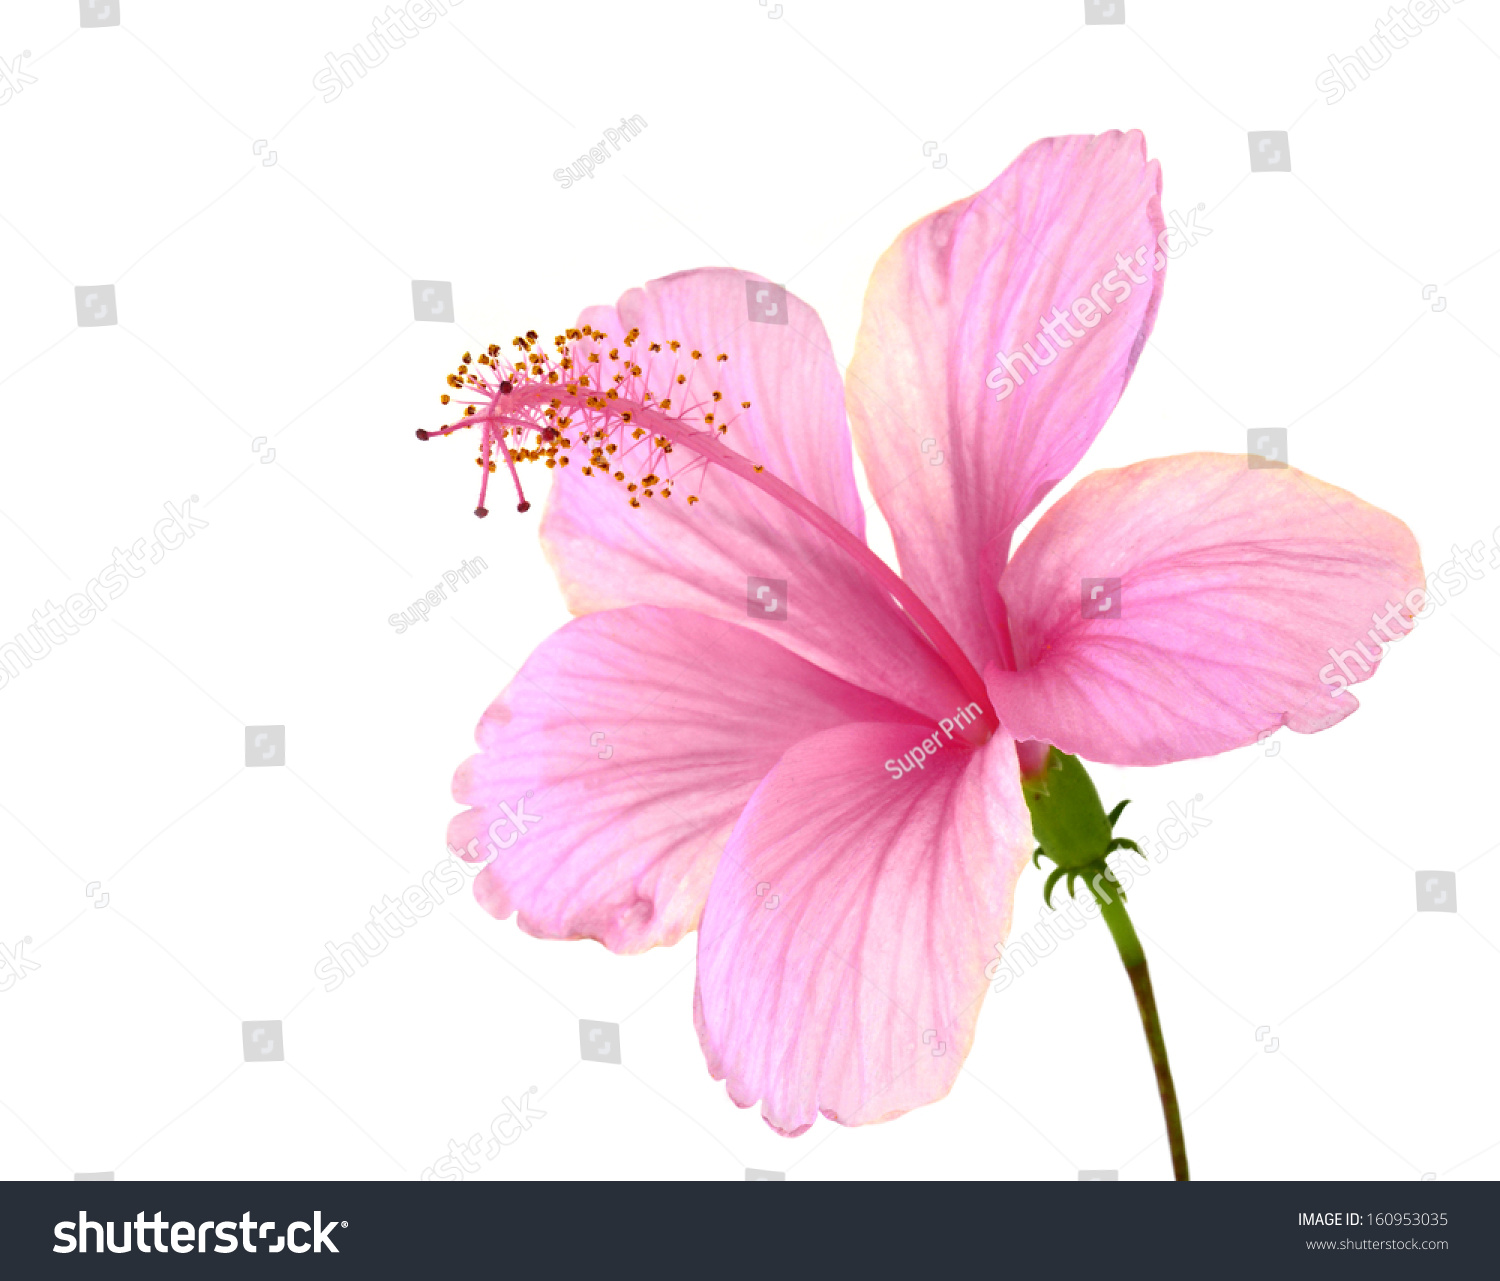 Beautiful pink hibiscus flower fully petals stock photo royalty beautiful of pink hibiscus flower with fully petals details isolated on white background izmirmasajfo Gallery